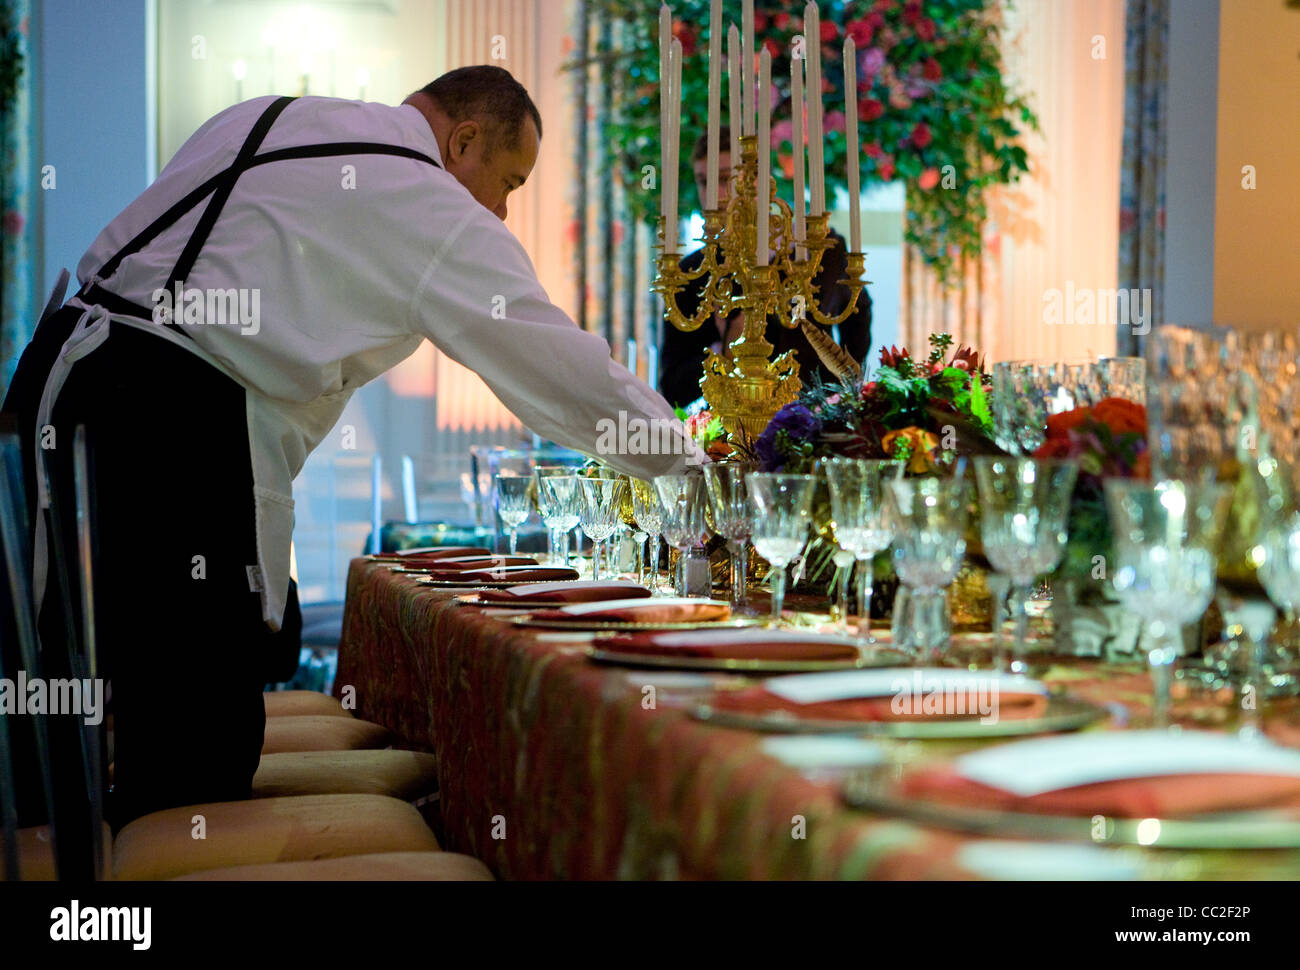 Preparations in the State Dining Room of the White House for the China state dinner. - Stock Image